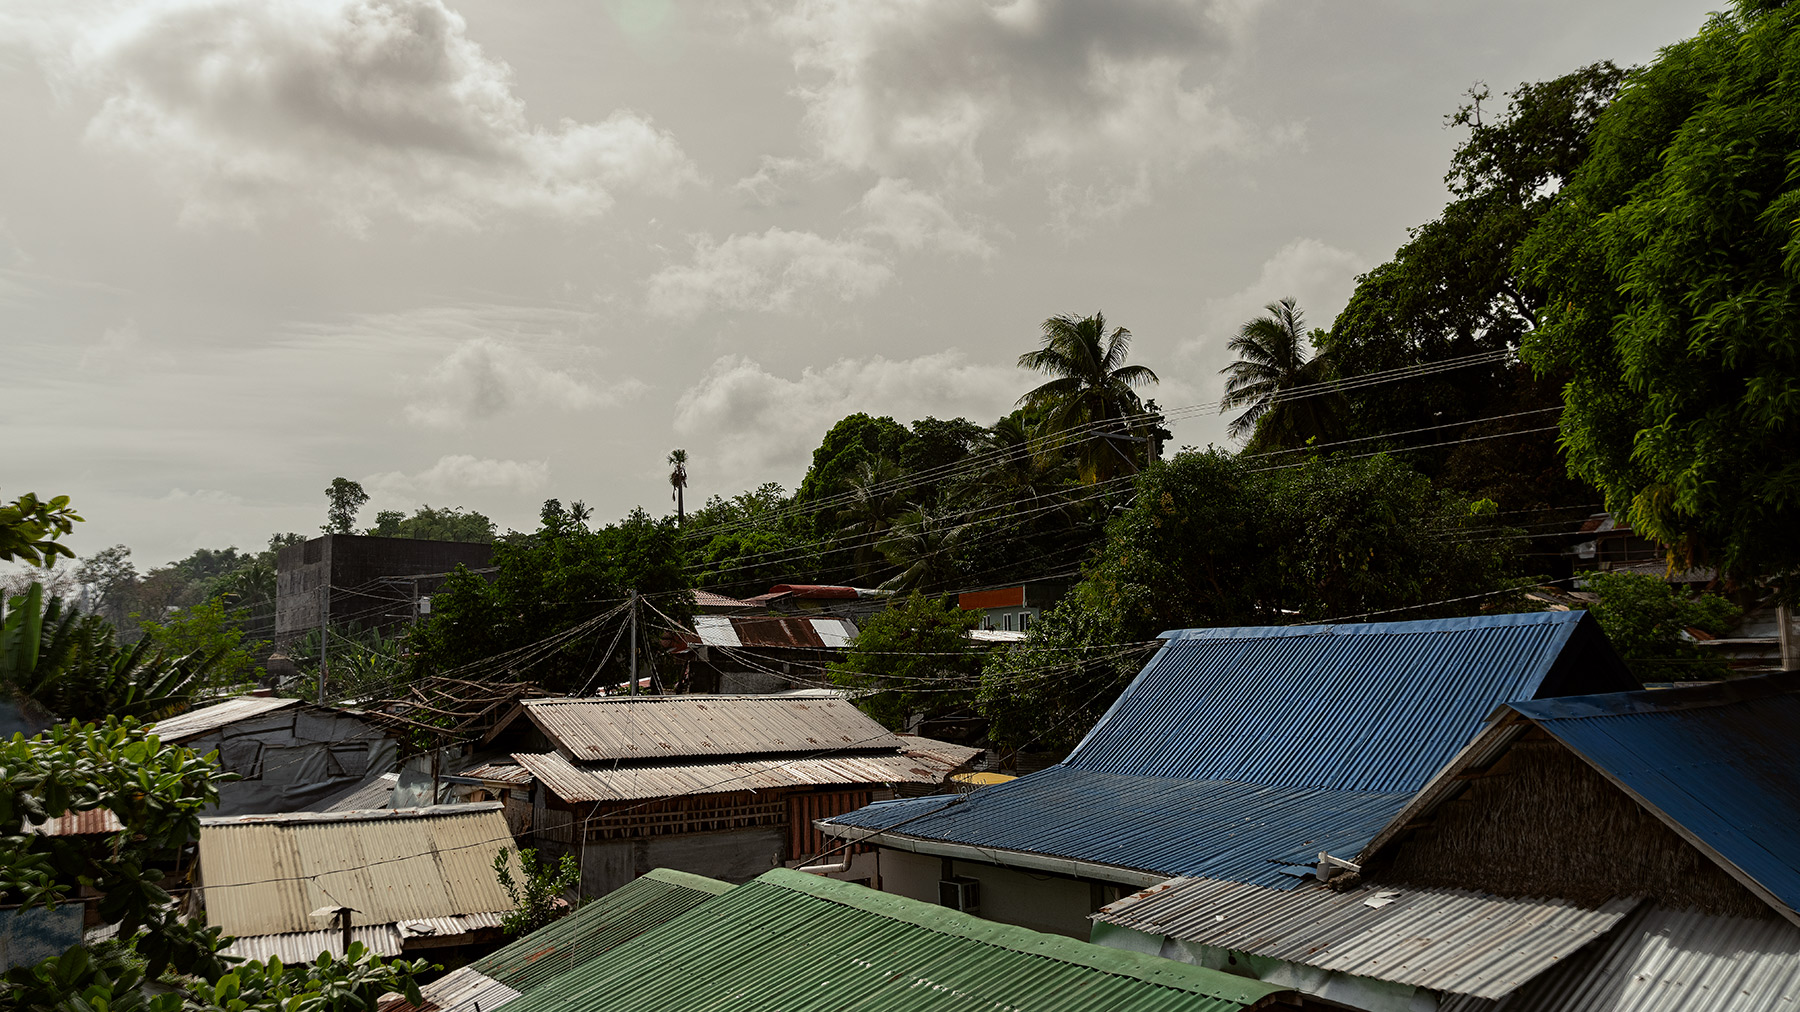 Good Boy Wolf Photographer, filmic landscape, Philippines , Taclobhan roof tops with blue roof